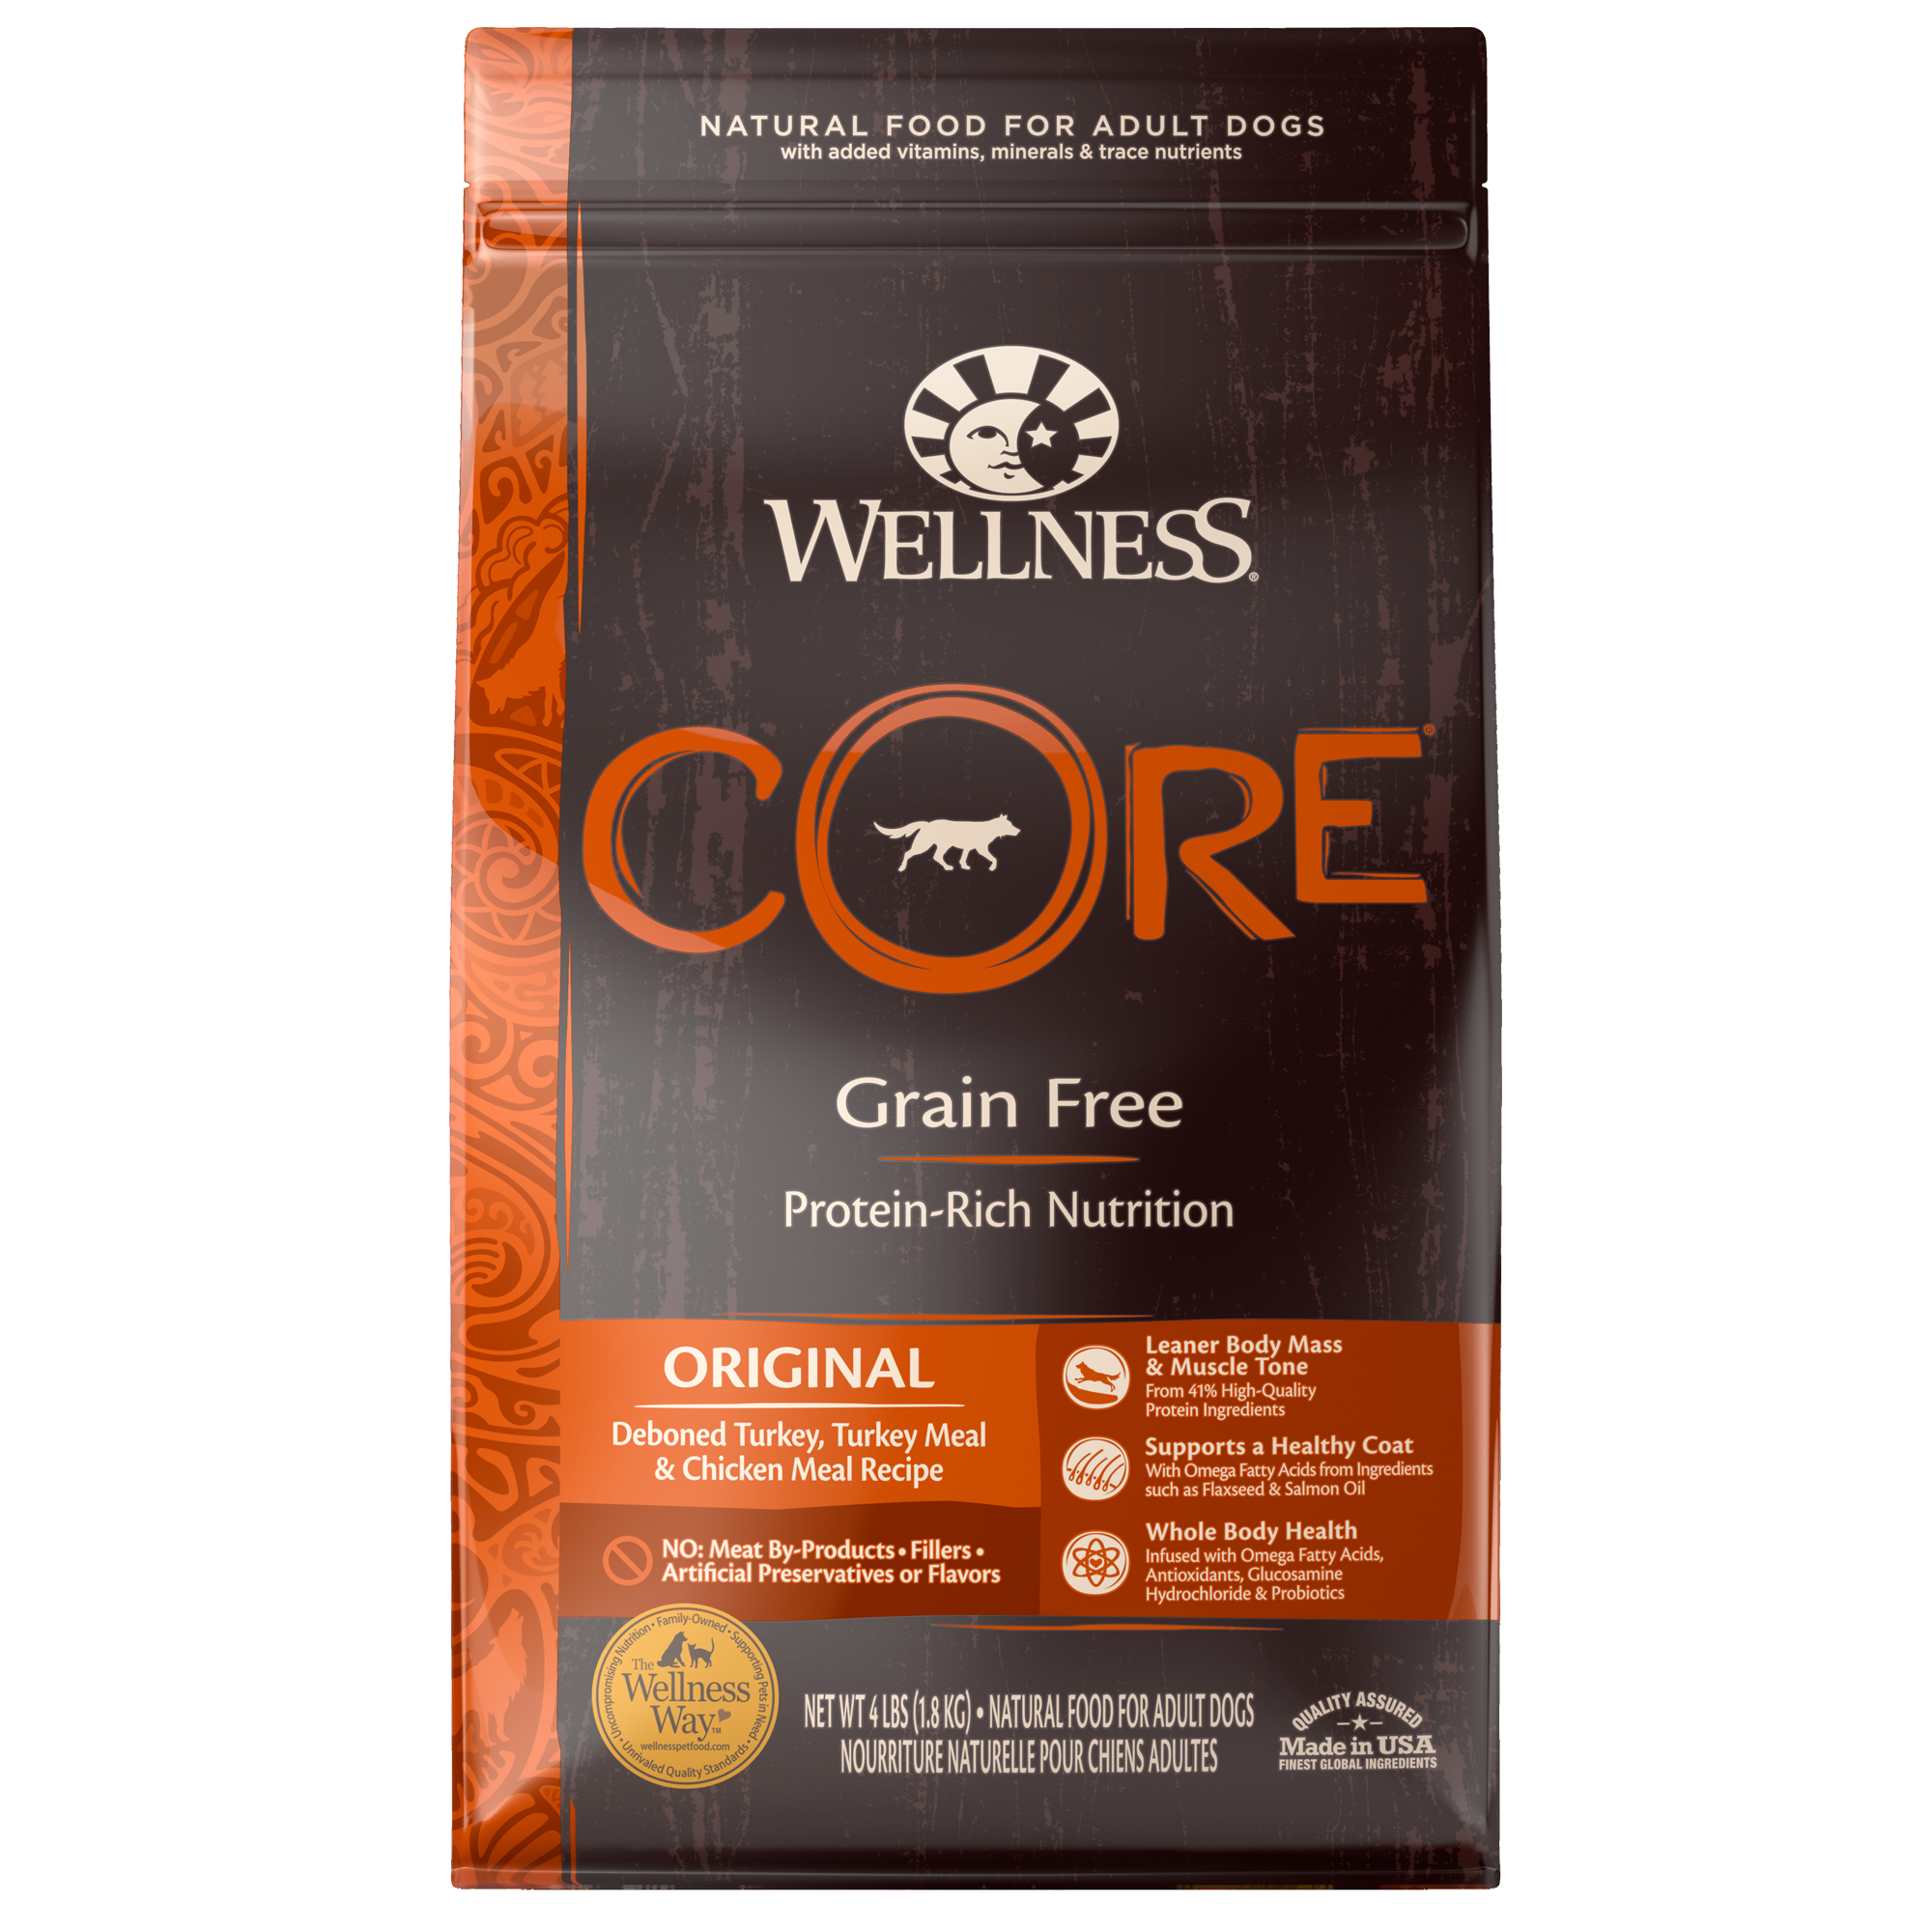 Wellness Core Ocean Dog Food Review